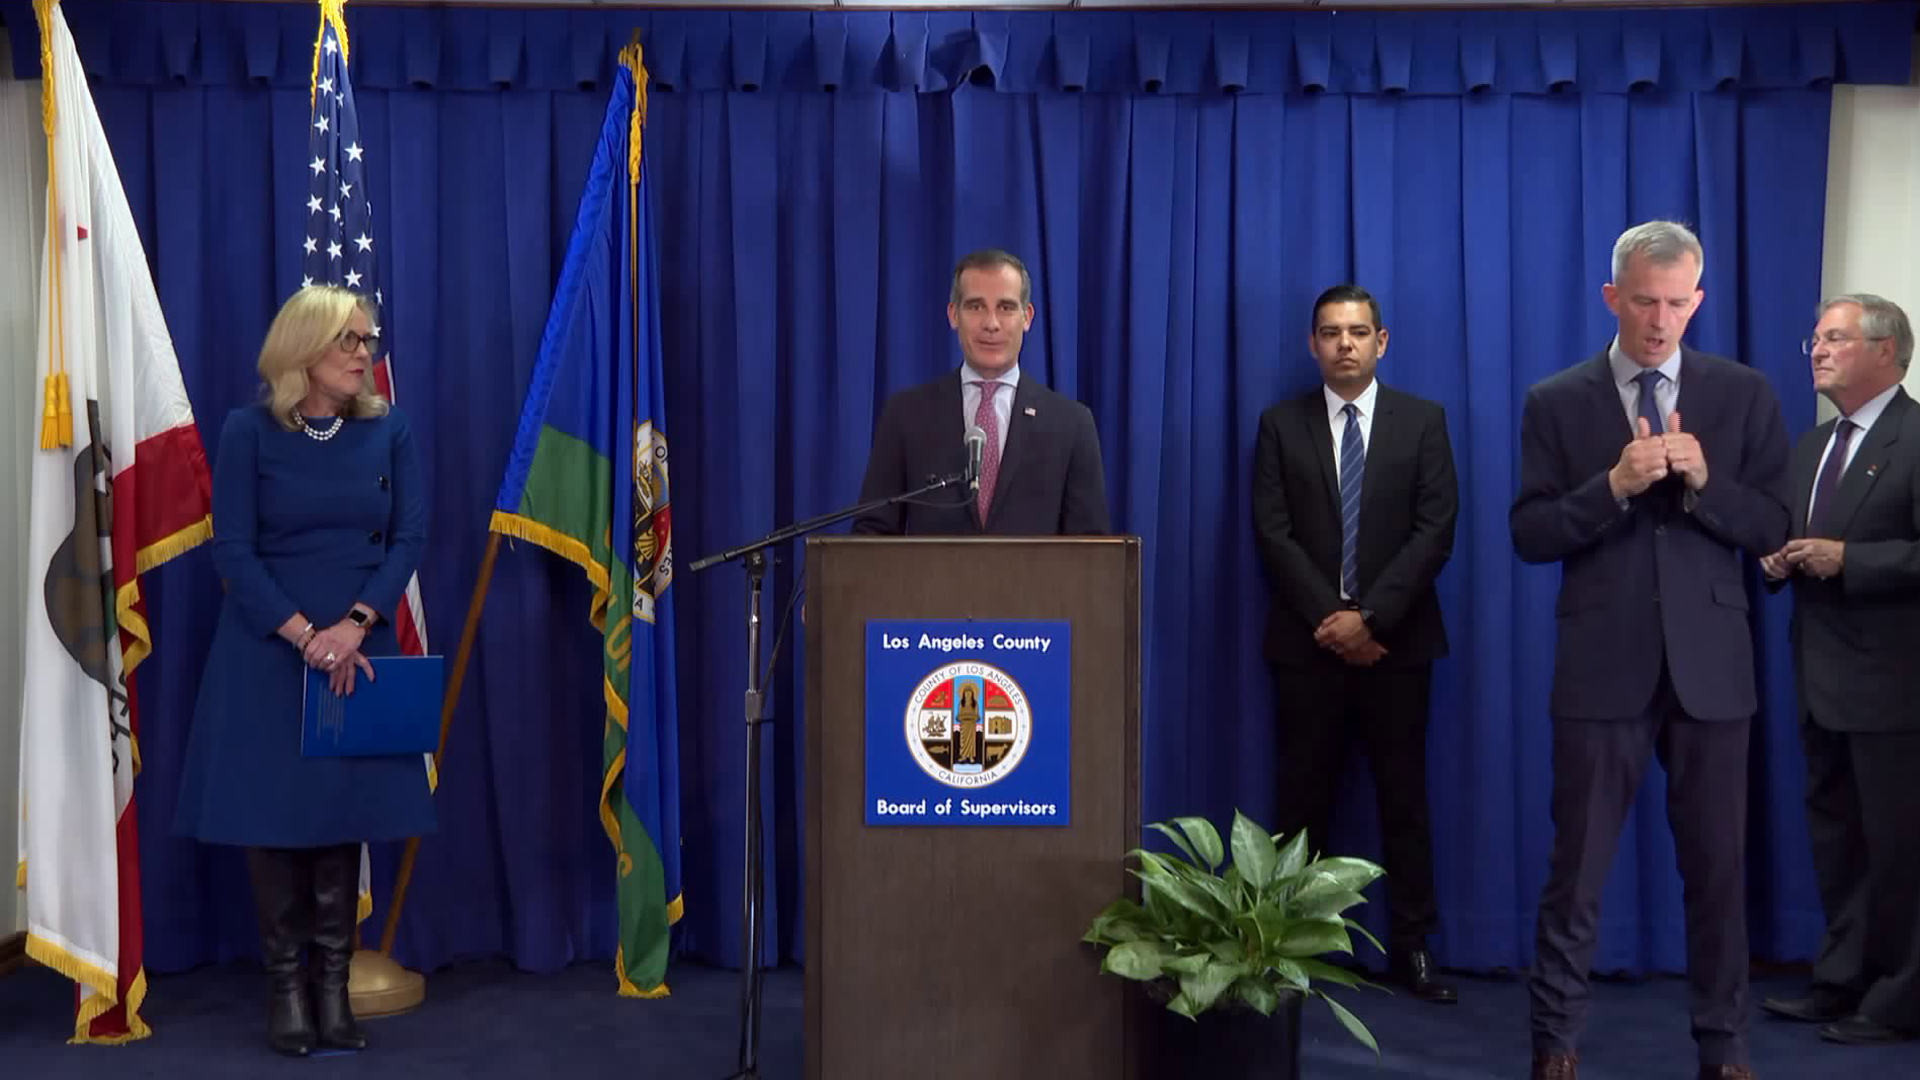 L.A. Mayor Eric Garcetti speaks during a news conference on March 19, 2020. (KTLA)